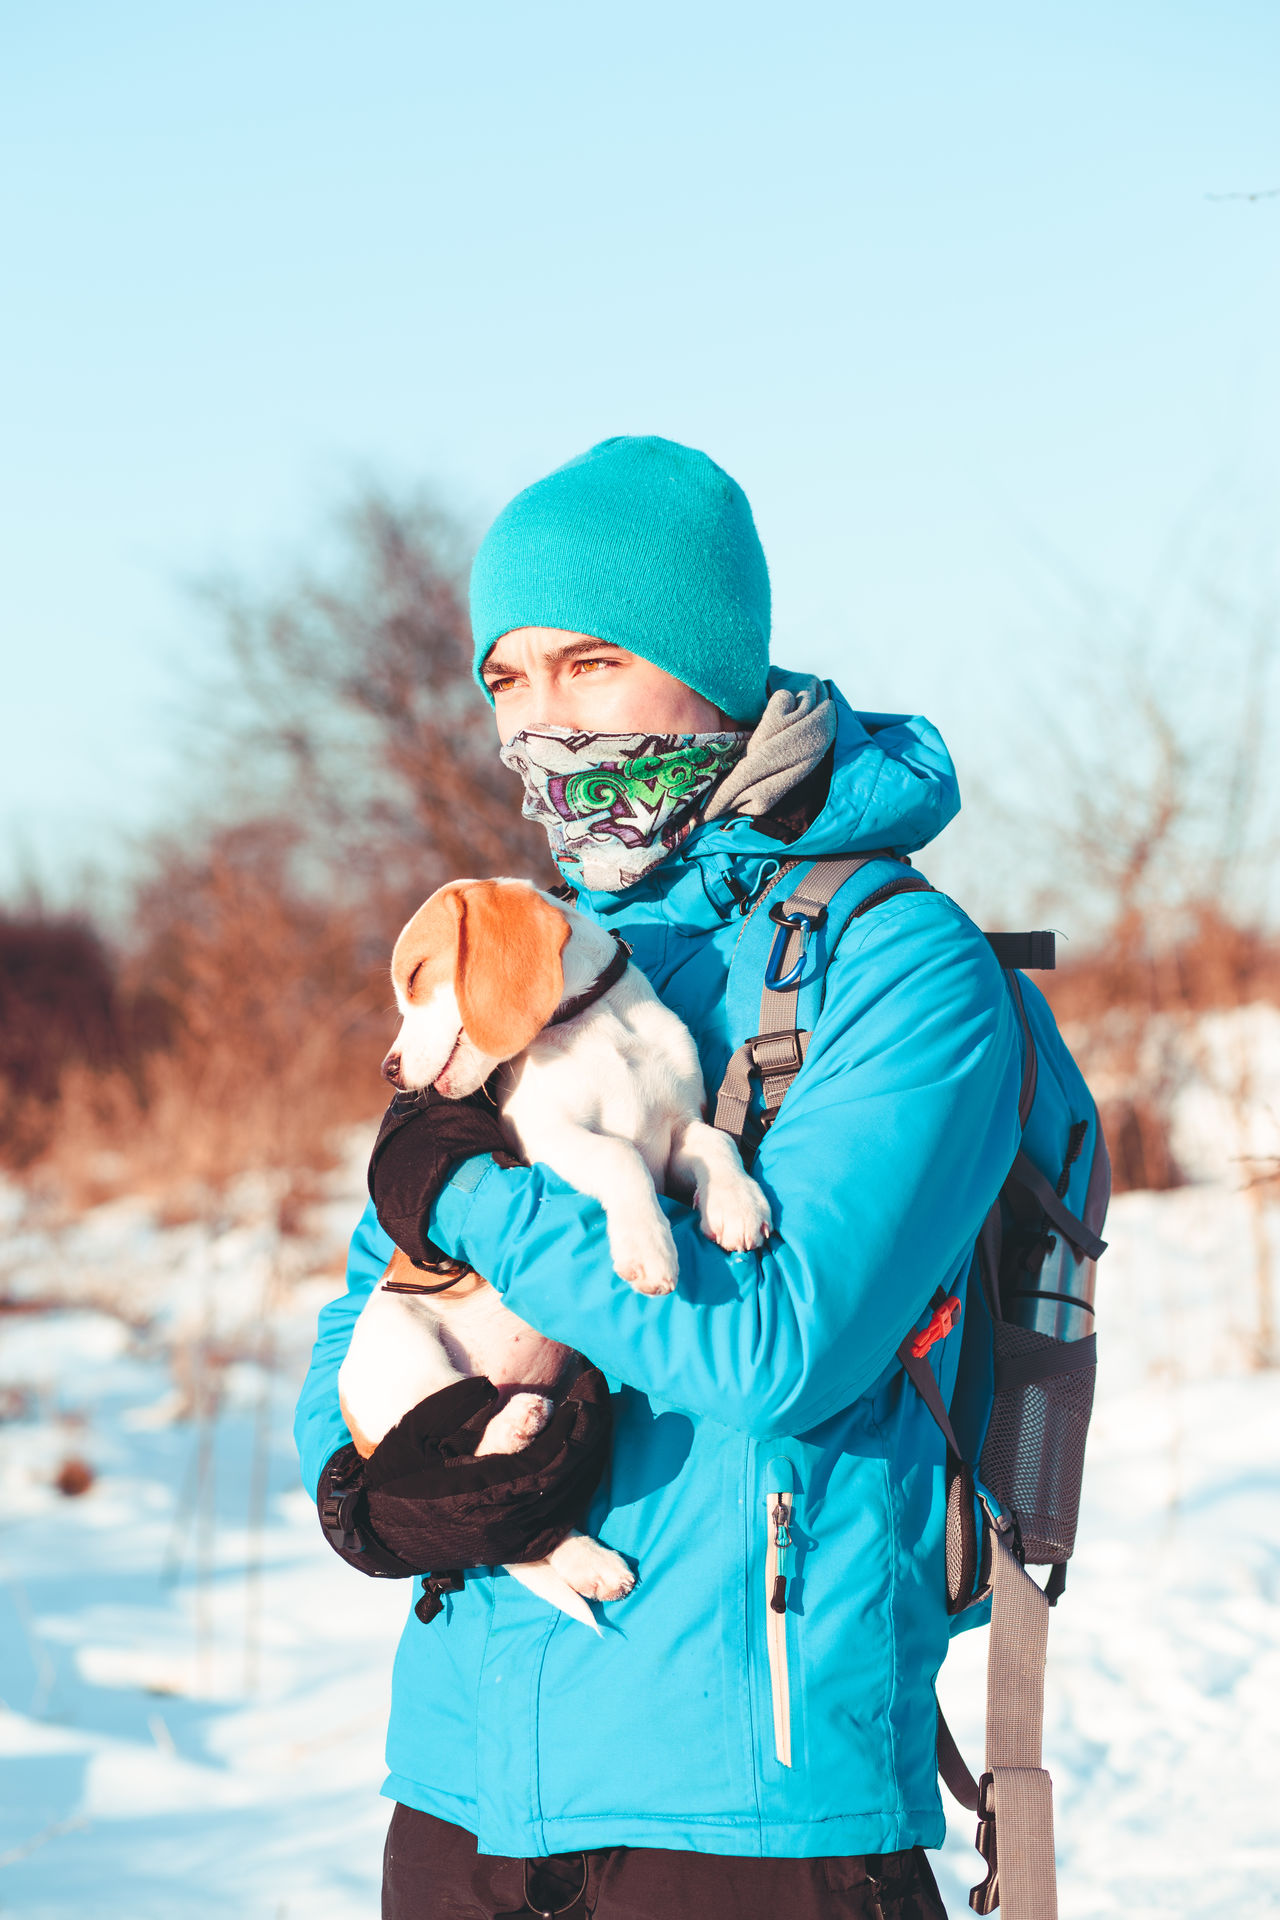 Boy holding the dog during the winter trip Active Activity Backpack Backpacking Bandana Boy Cold Day Dog Hike Hiker Journey Lifestyles Nature Outdoors People Person Pet Puppy Snow Teenager Trip Walk Winter Wintertime